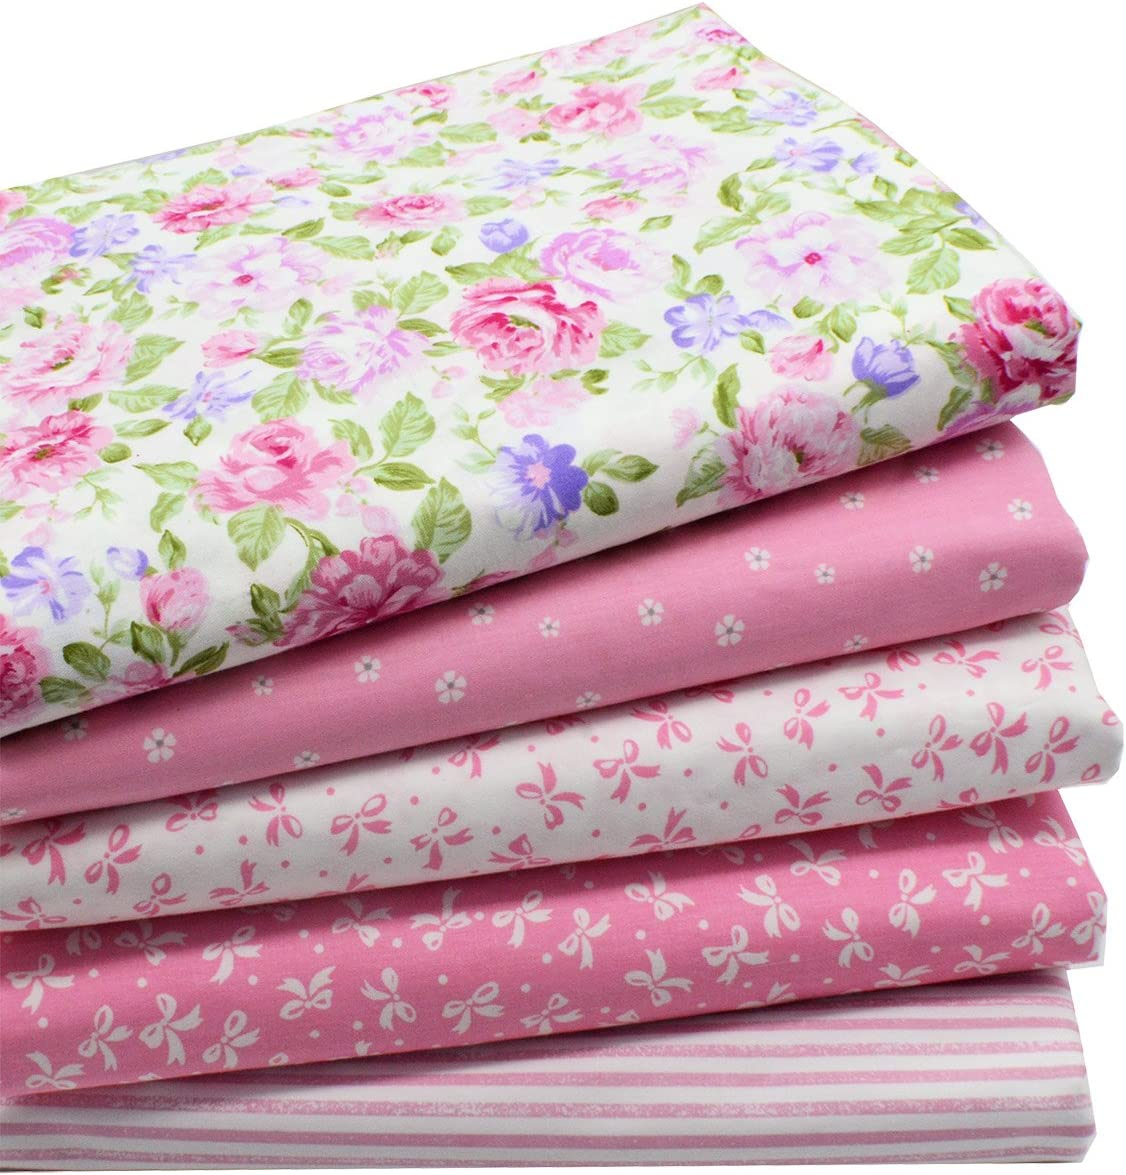 iNee Pink Fat Quarters Quilting Fabric Bundles